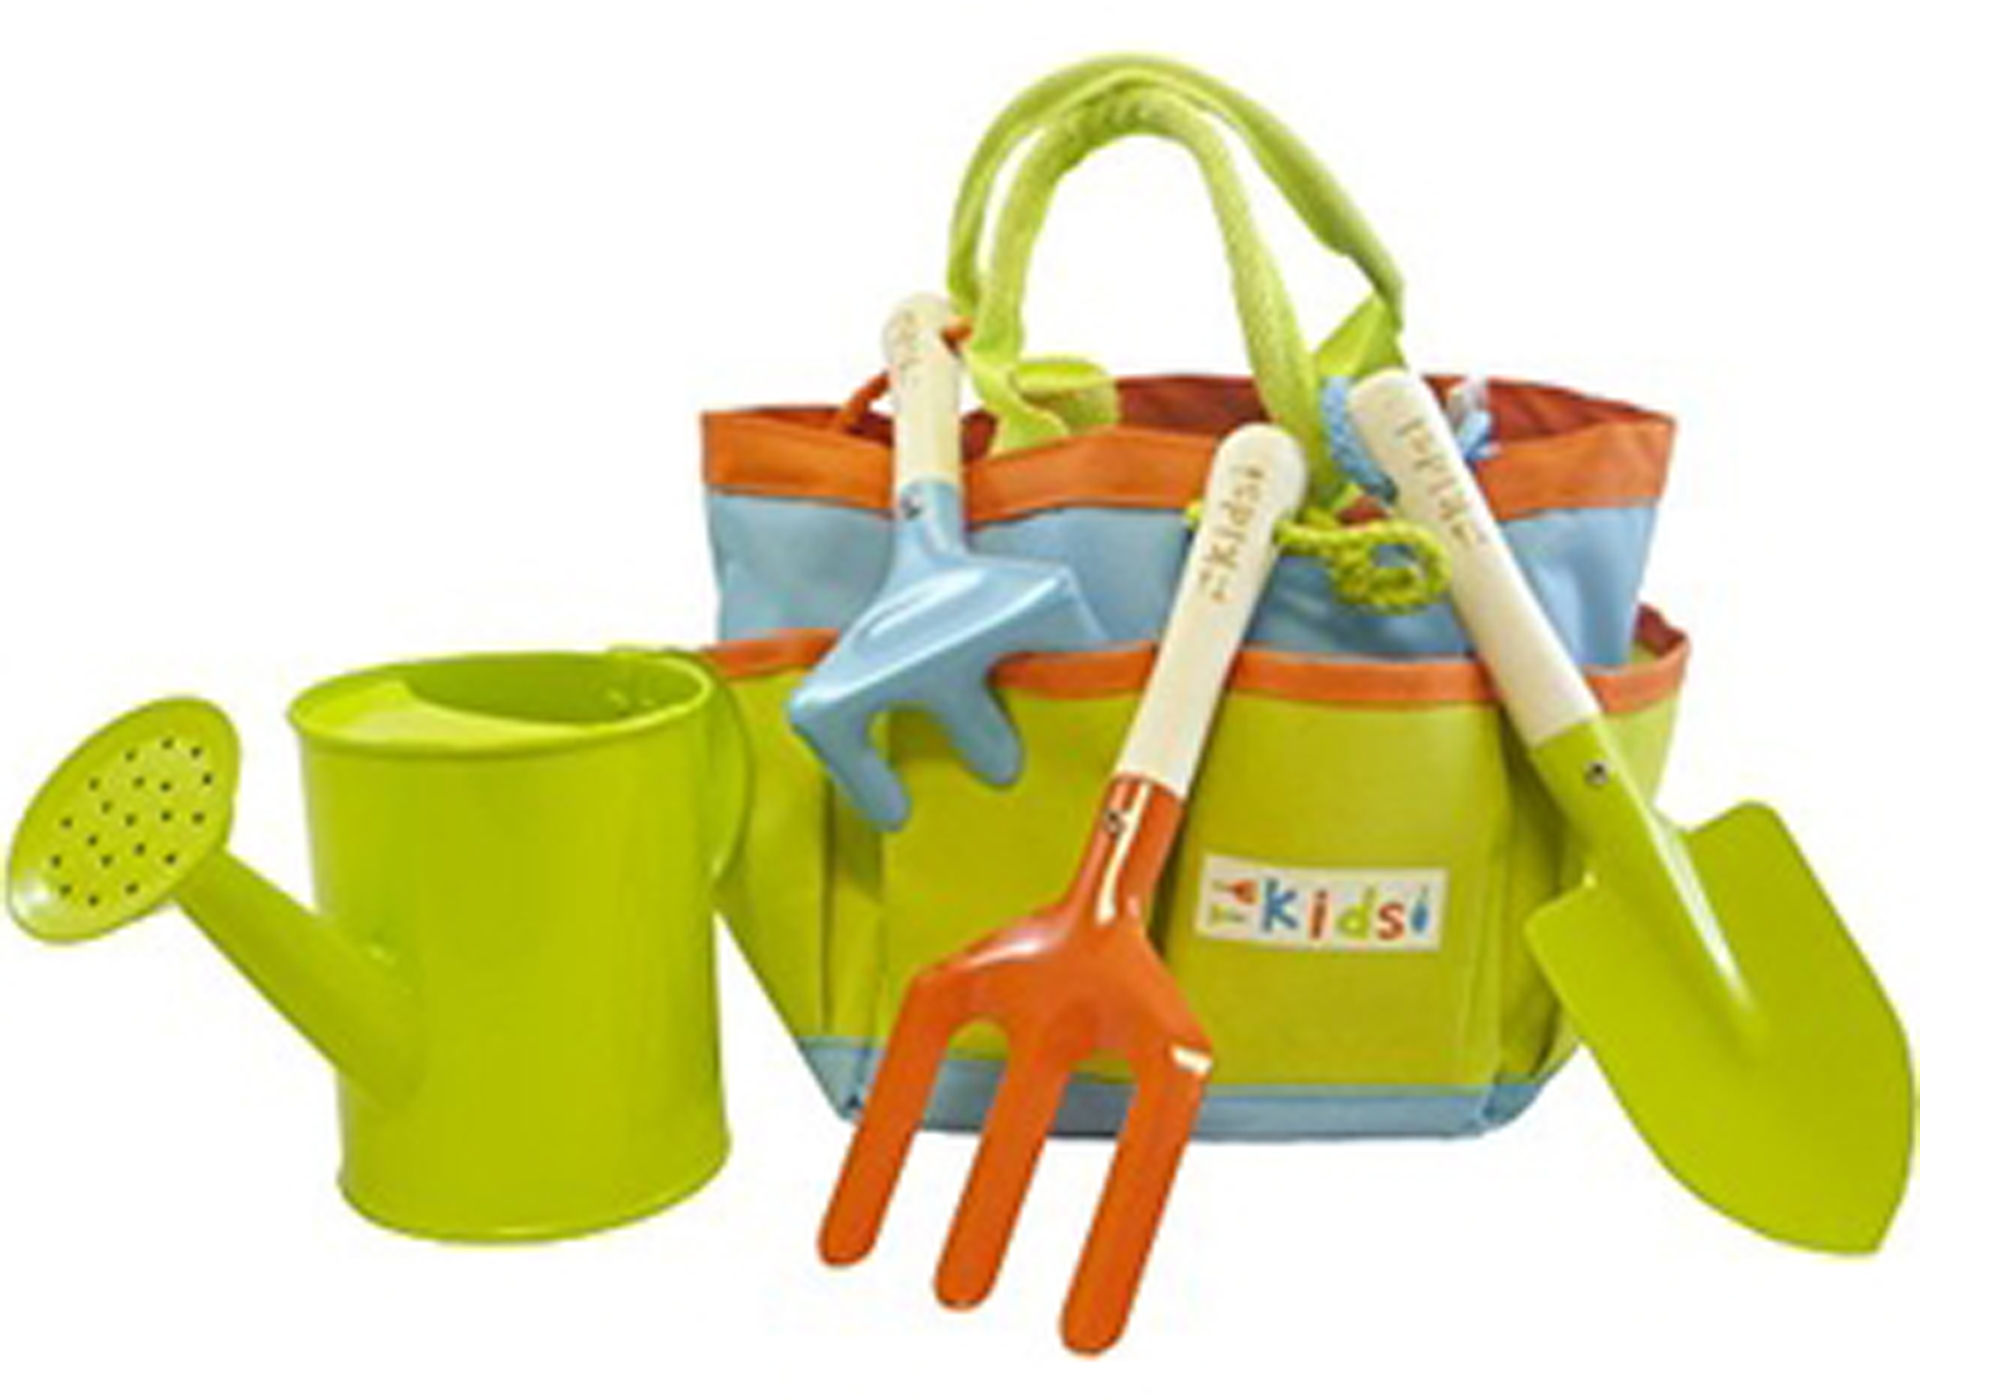 Kids Tool Bag with Watering can